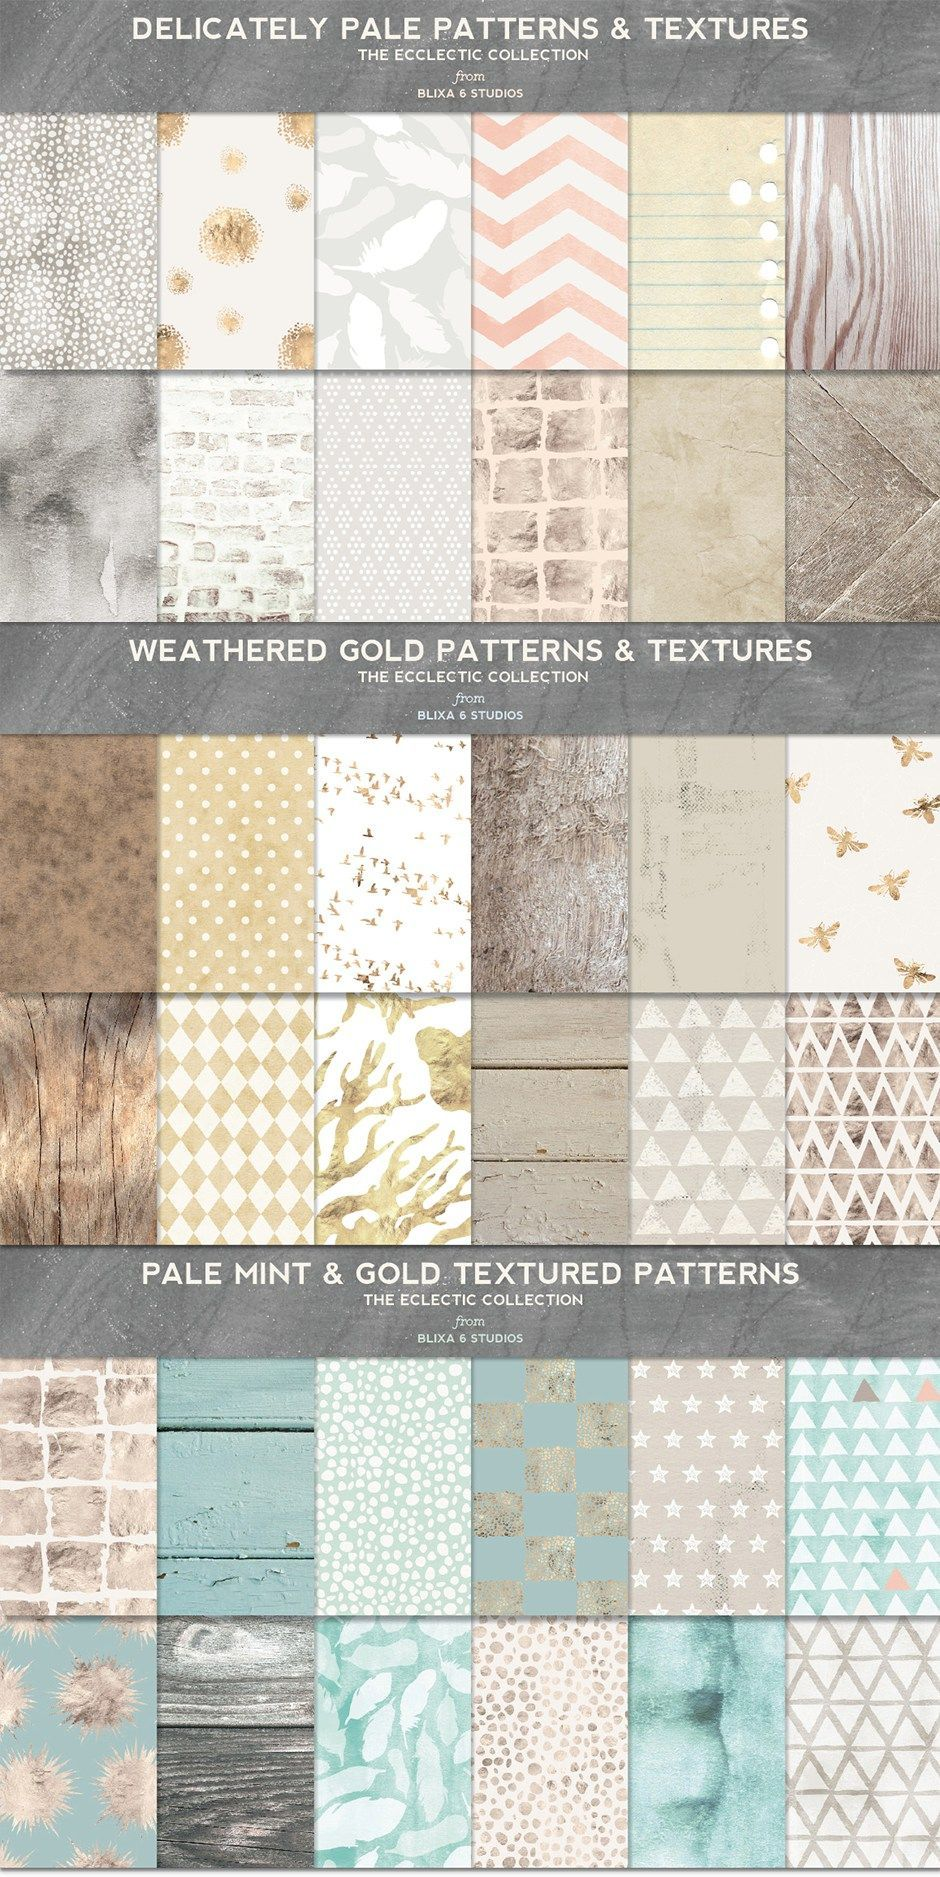 Eclectic Textures Rich Hand Made Watercolor Digital Patterns Digital Pattern Pattern Texture